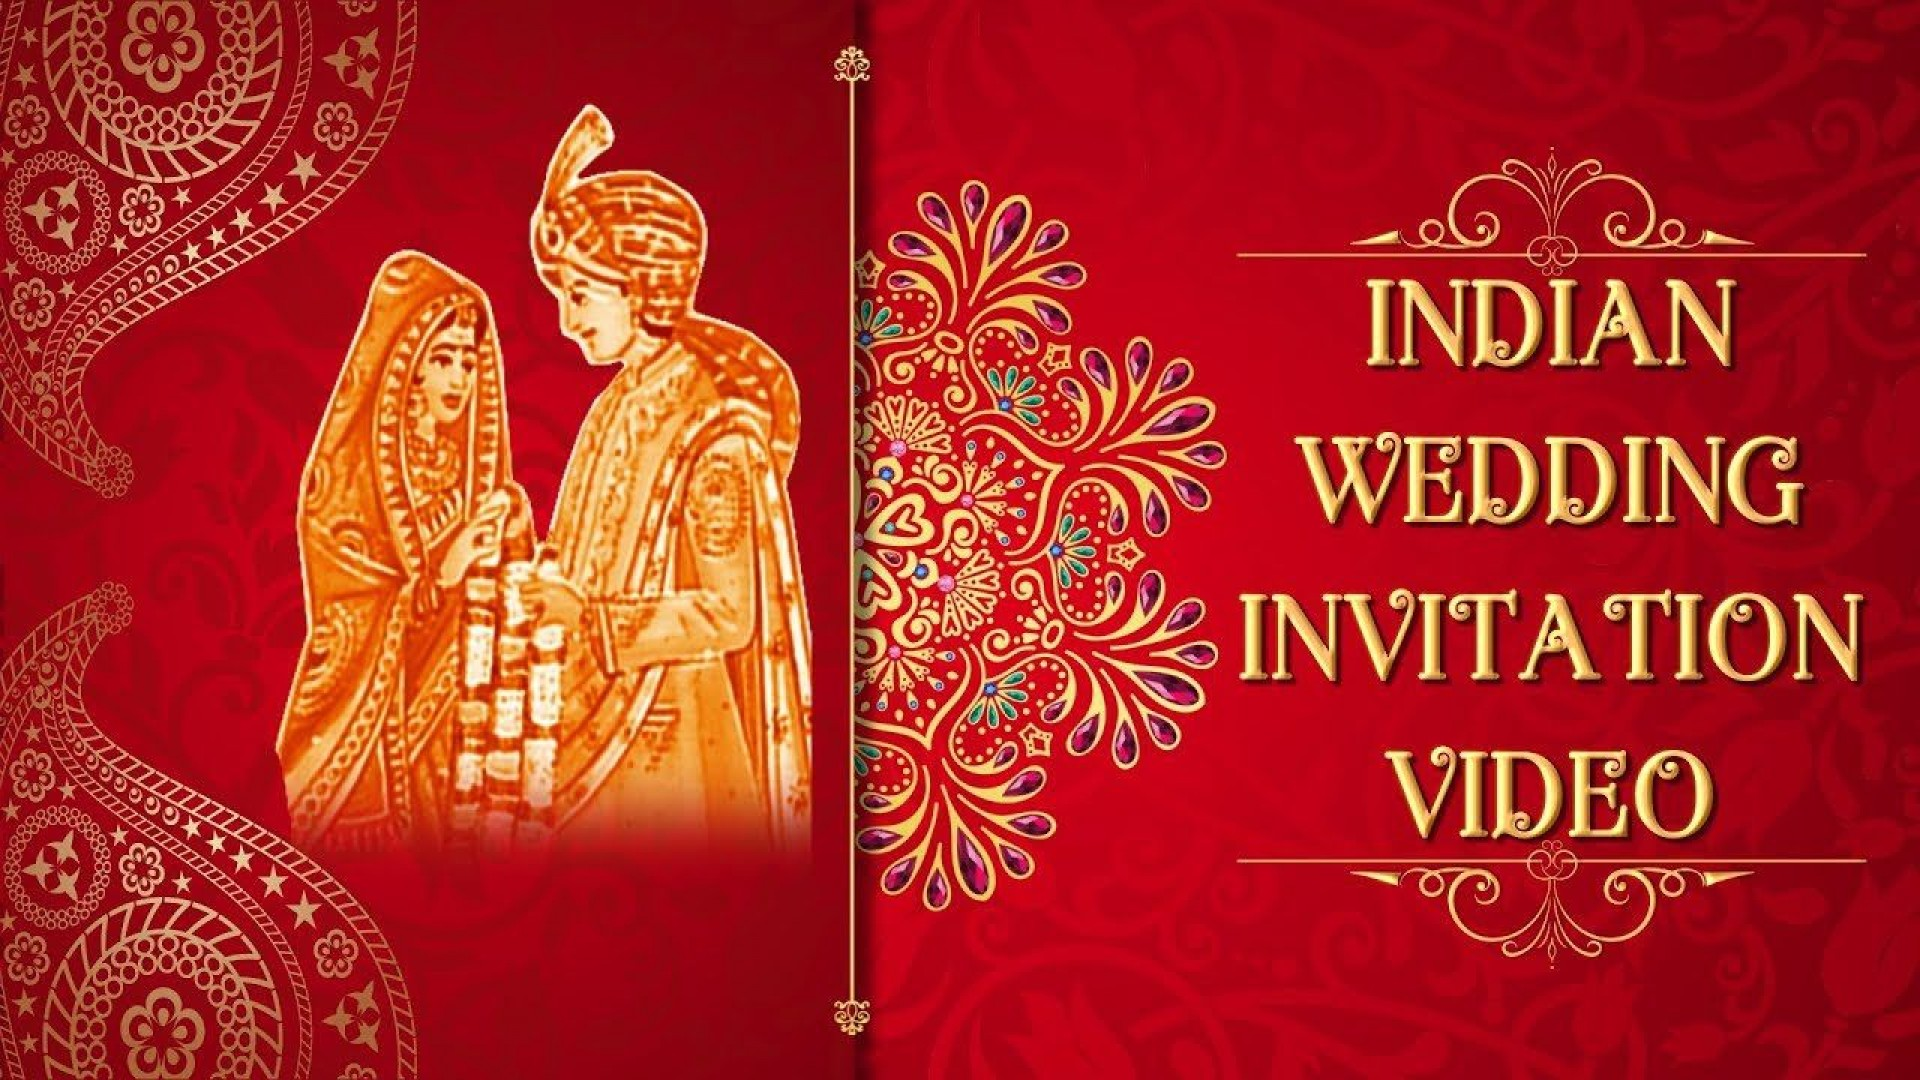 006 Frightening Free Online Indian Wedding Invitation Card Template Photo  Templates1920